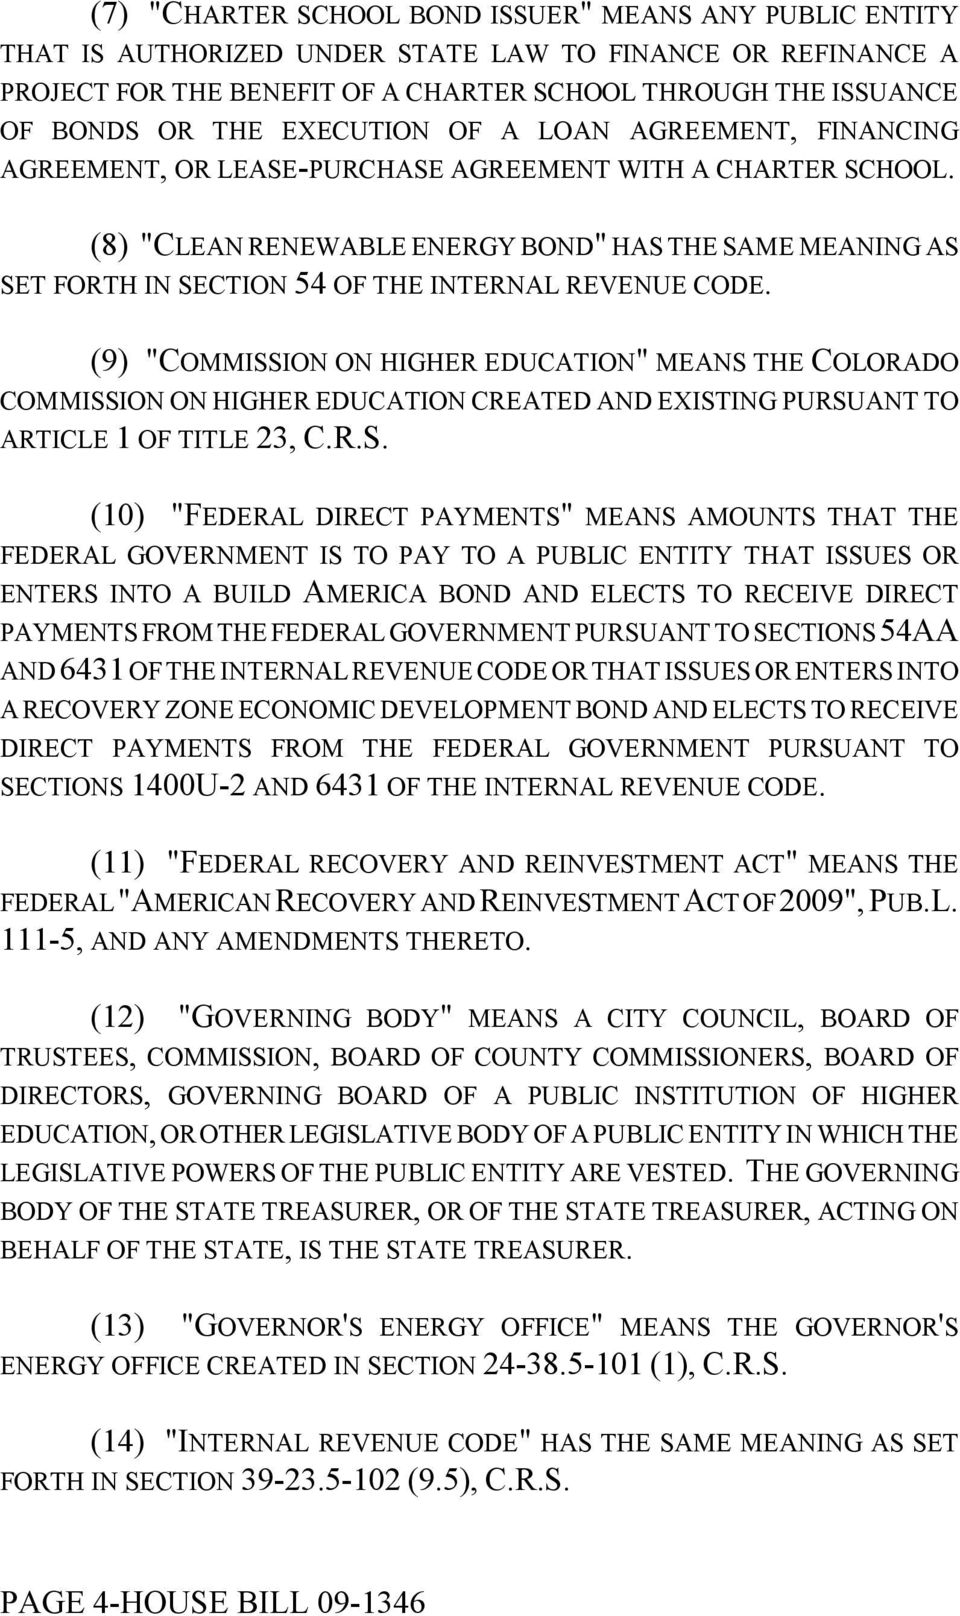 "(8) ""CLEAN RENEWABLE ENERGY BOND"" HAS THE SAME MEANING AS SET FORTH IN SECTION 54 OF THE INTERNAL REVENUE CODE."